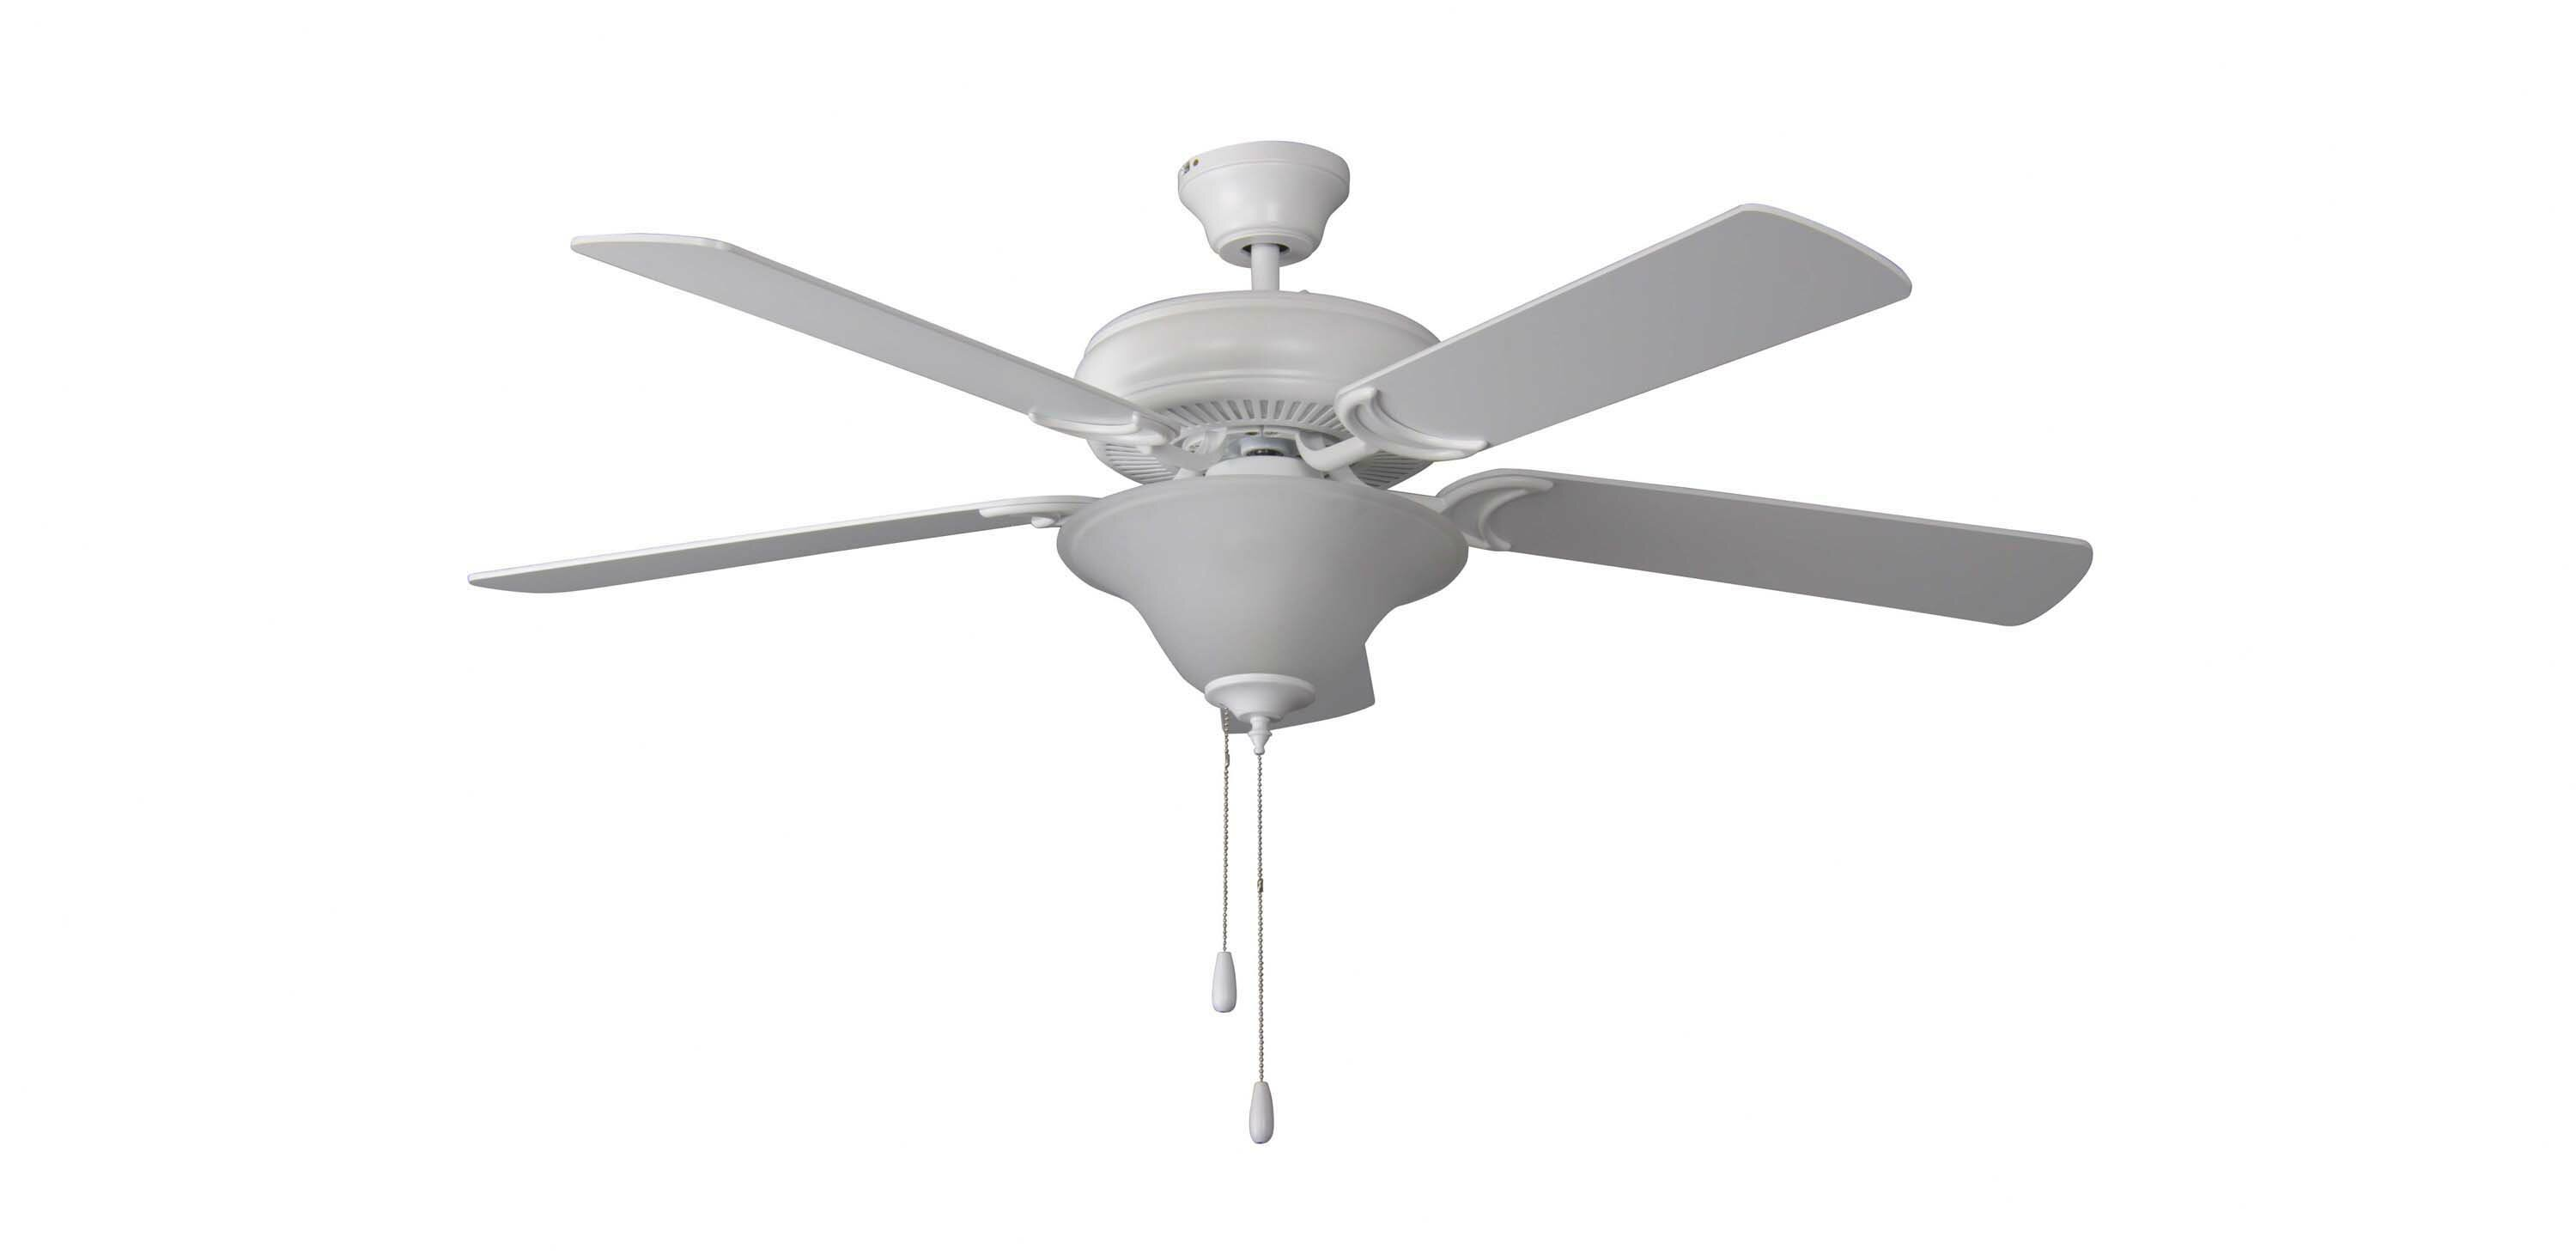 Winston Porter 52 Godbey 5 Blade Standard Ceiling Fan With Pull Chain And Light Kit Included Reviews Wayfair